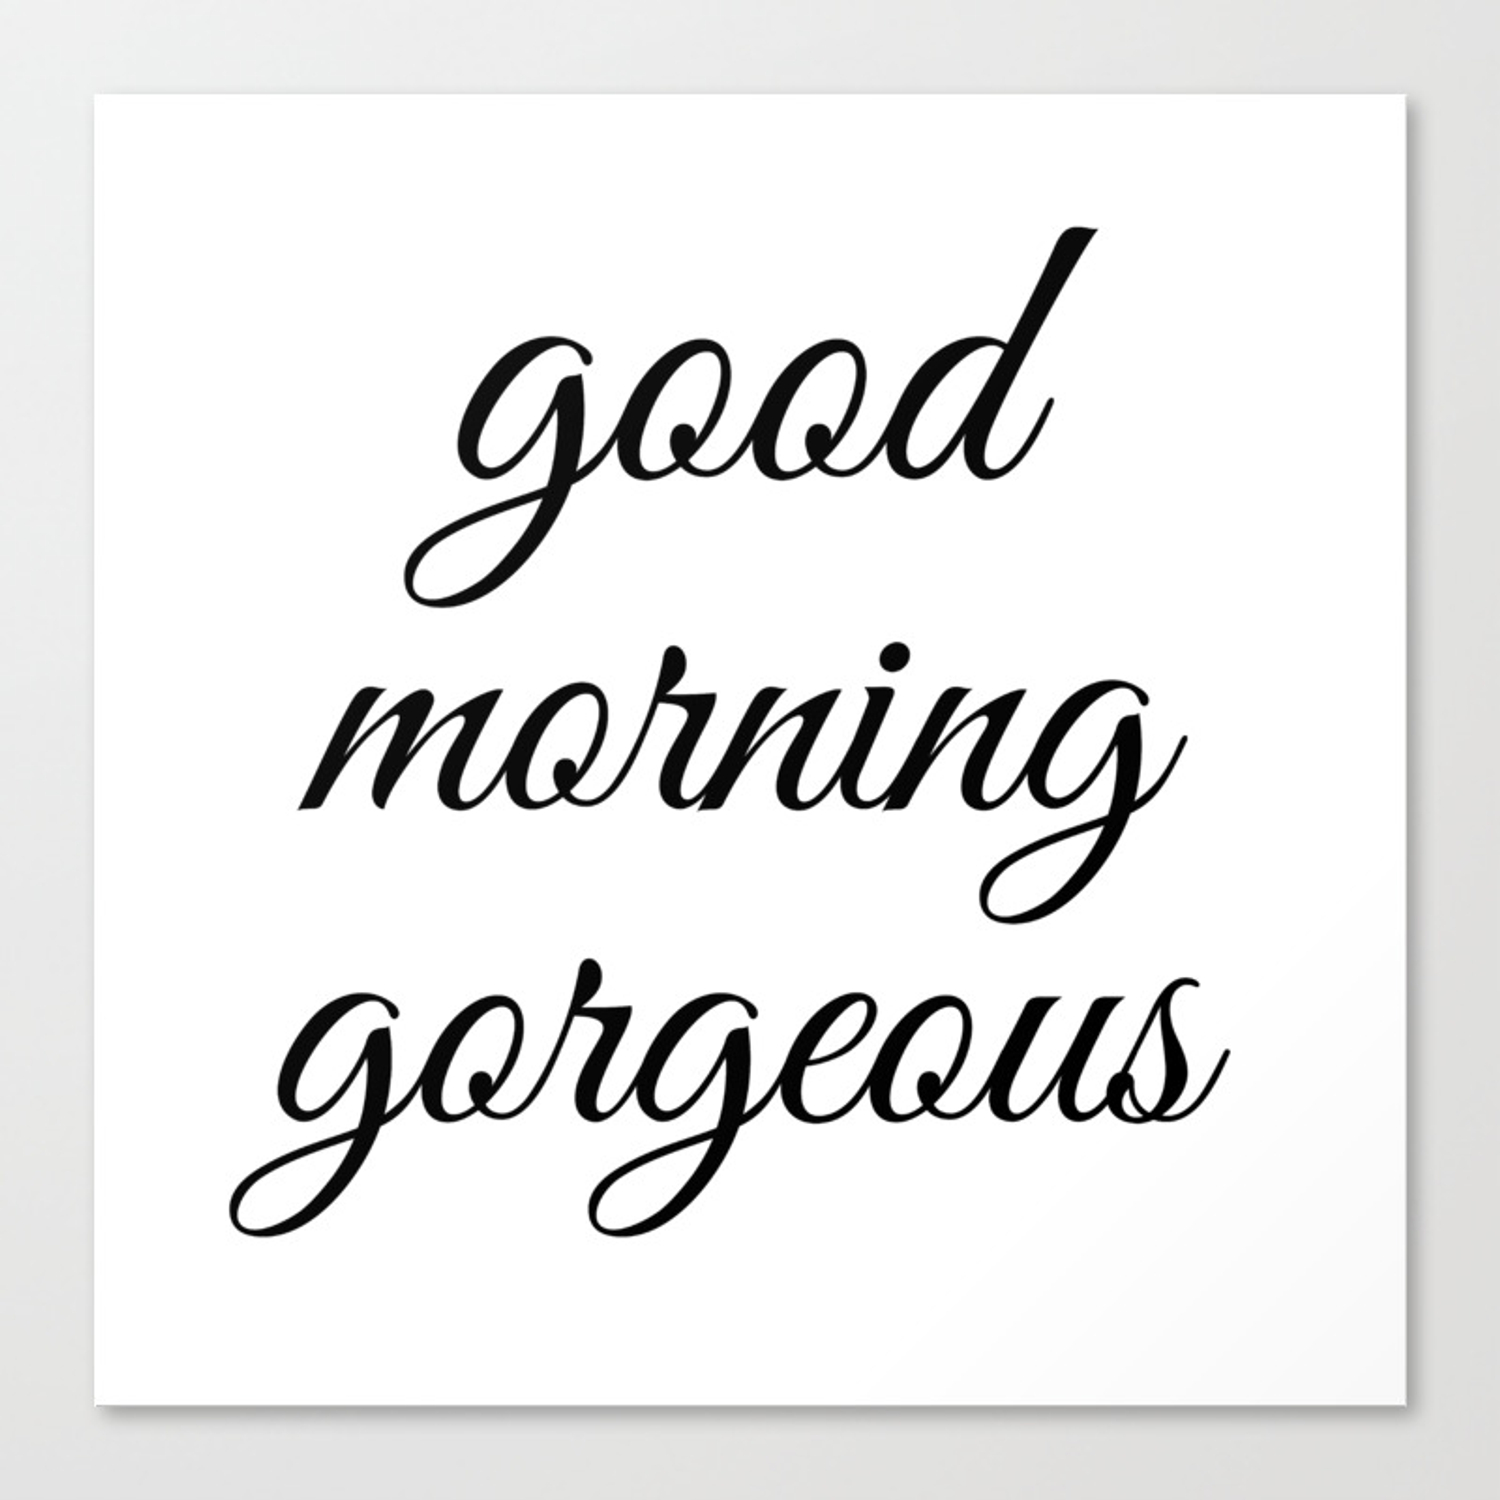 Good morning gorgeous funny inspirational hipster quote black and white typography print canvas print